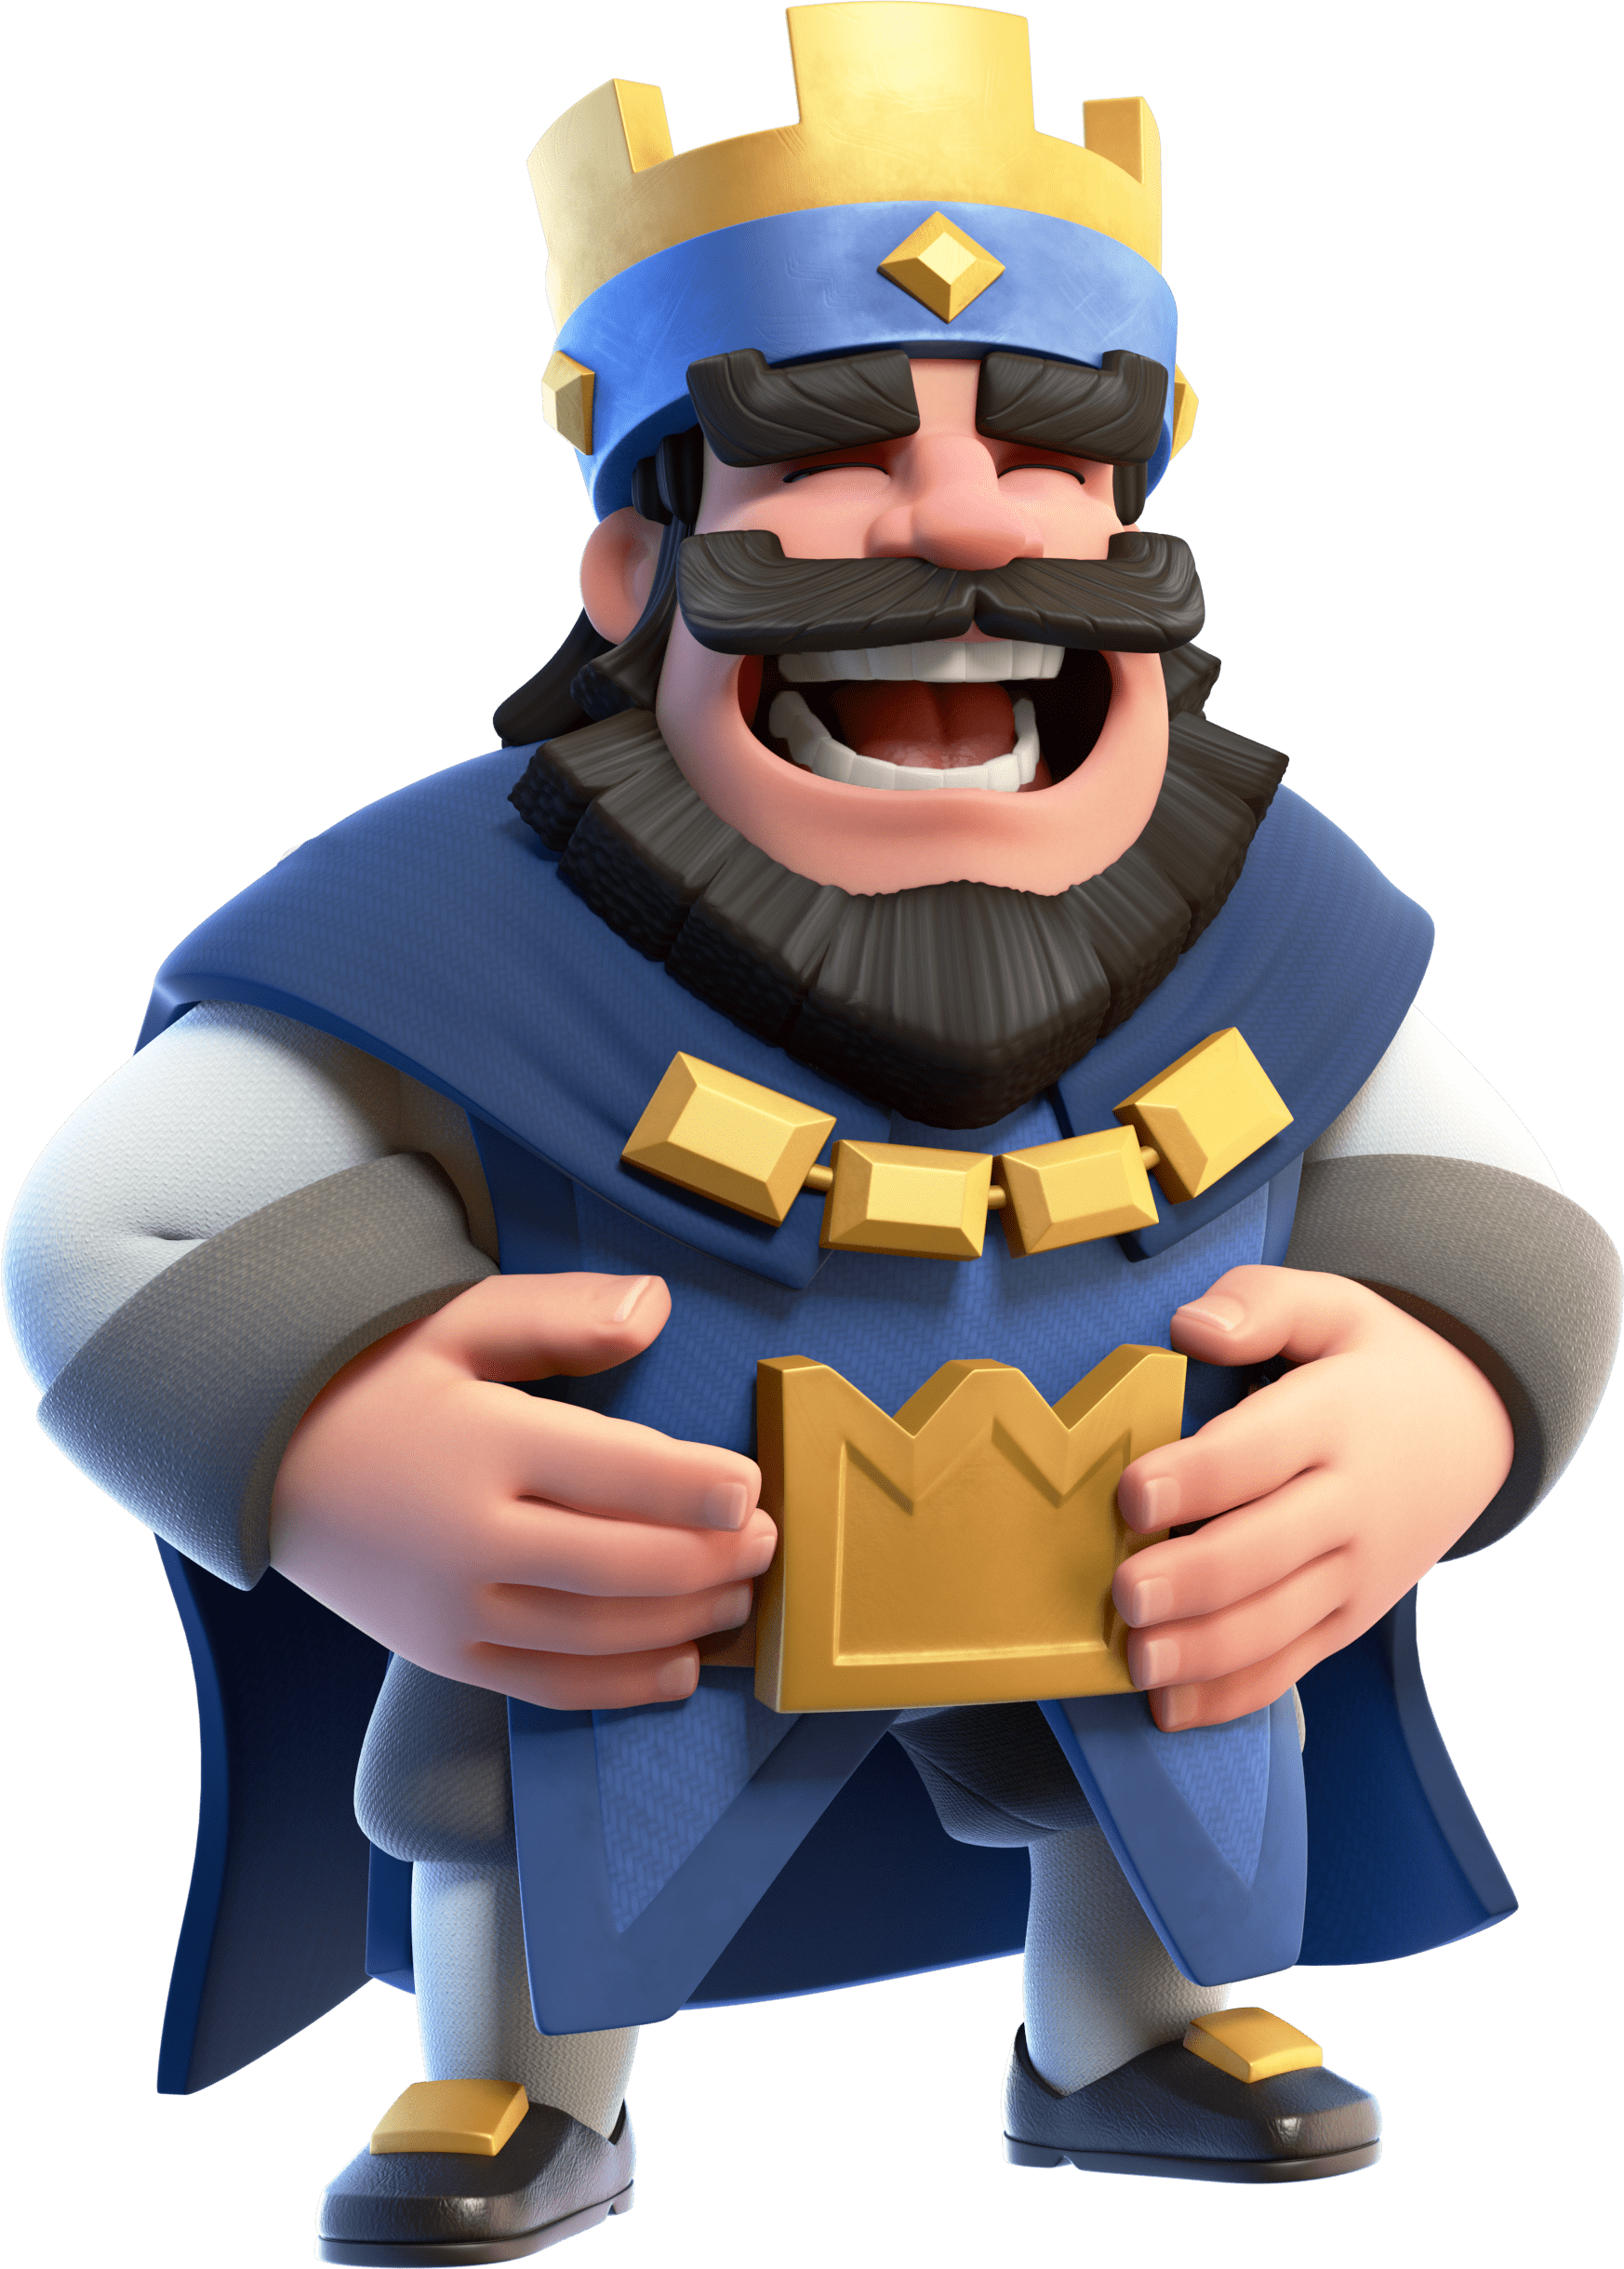 Clash Royale Laughing King - Laughing PNG HD